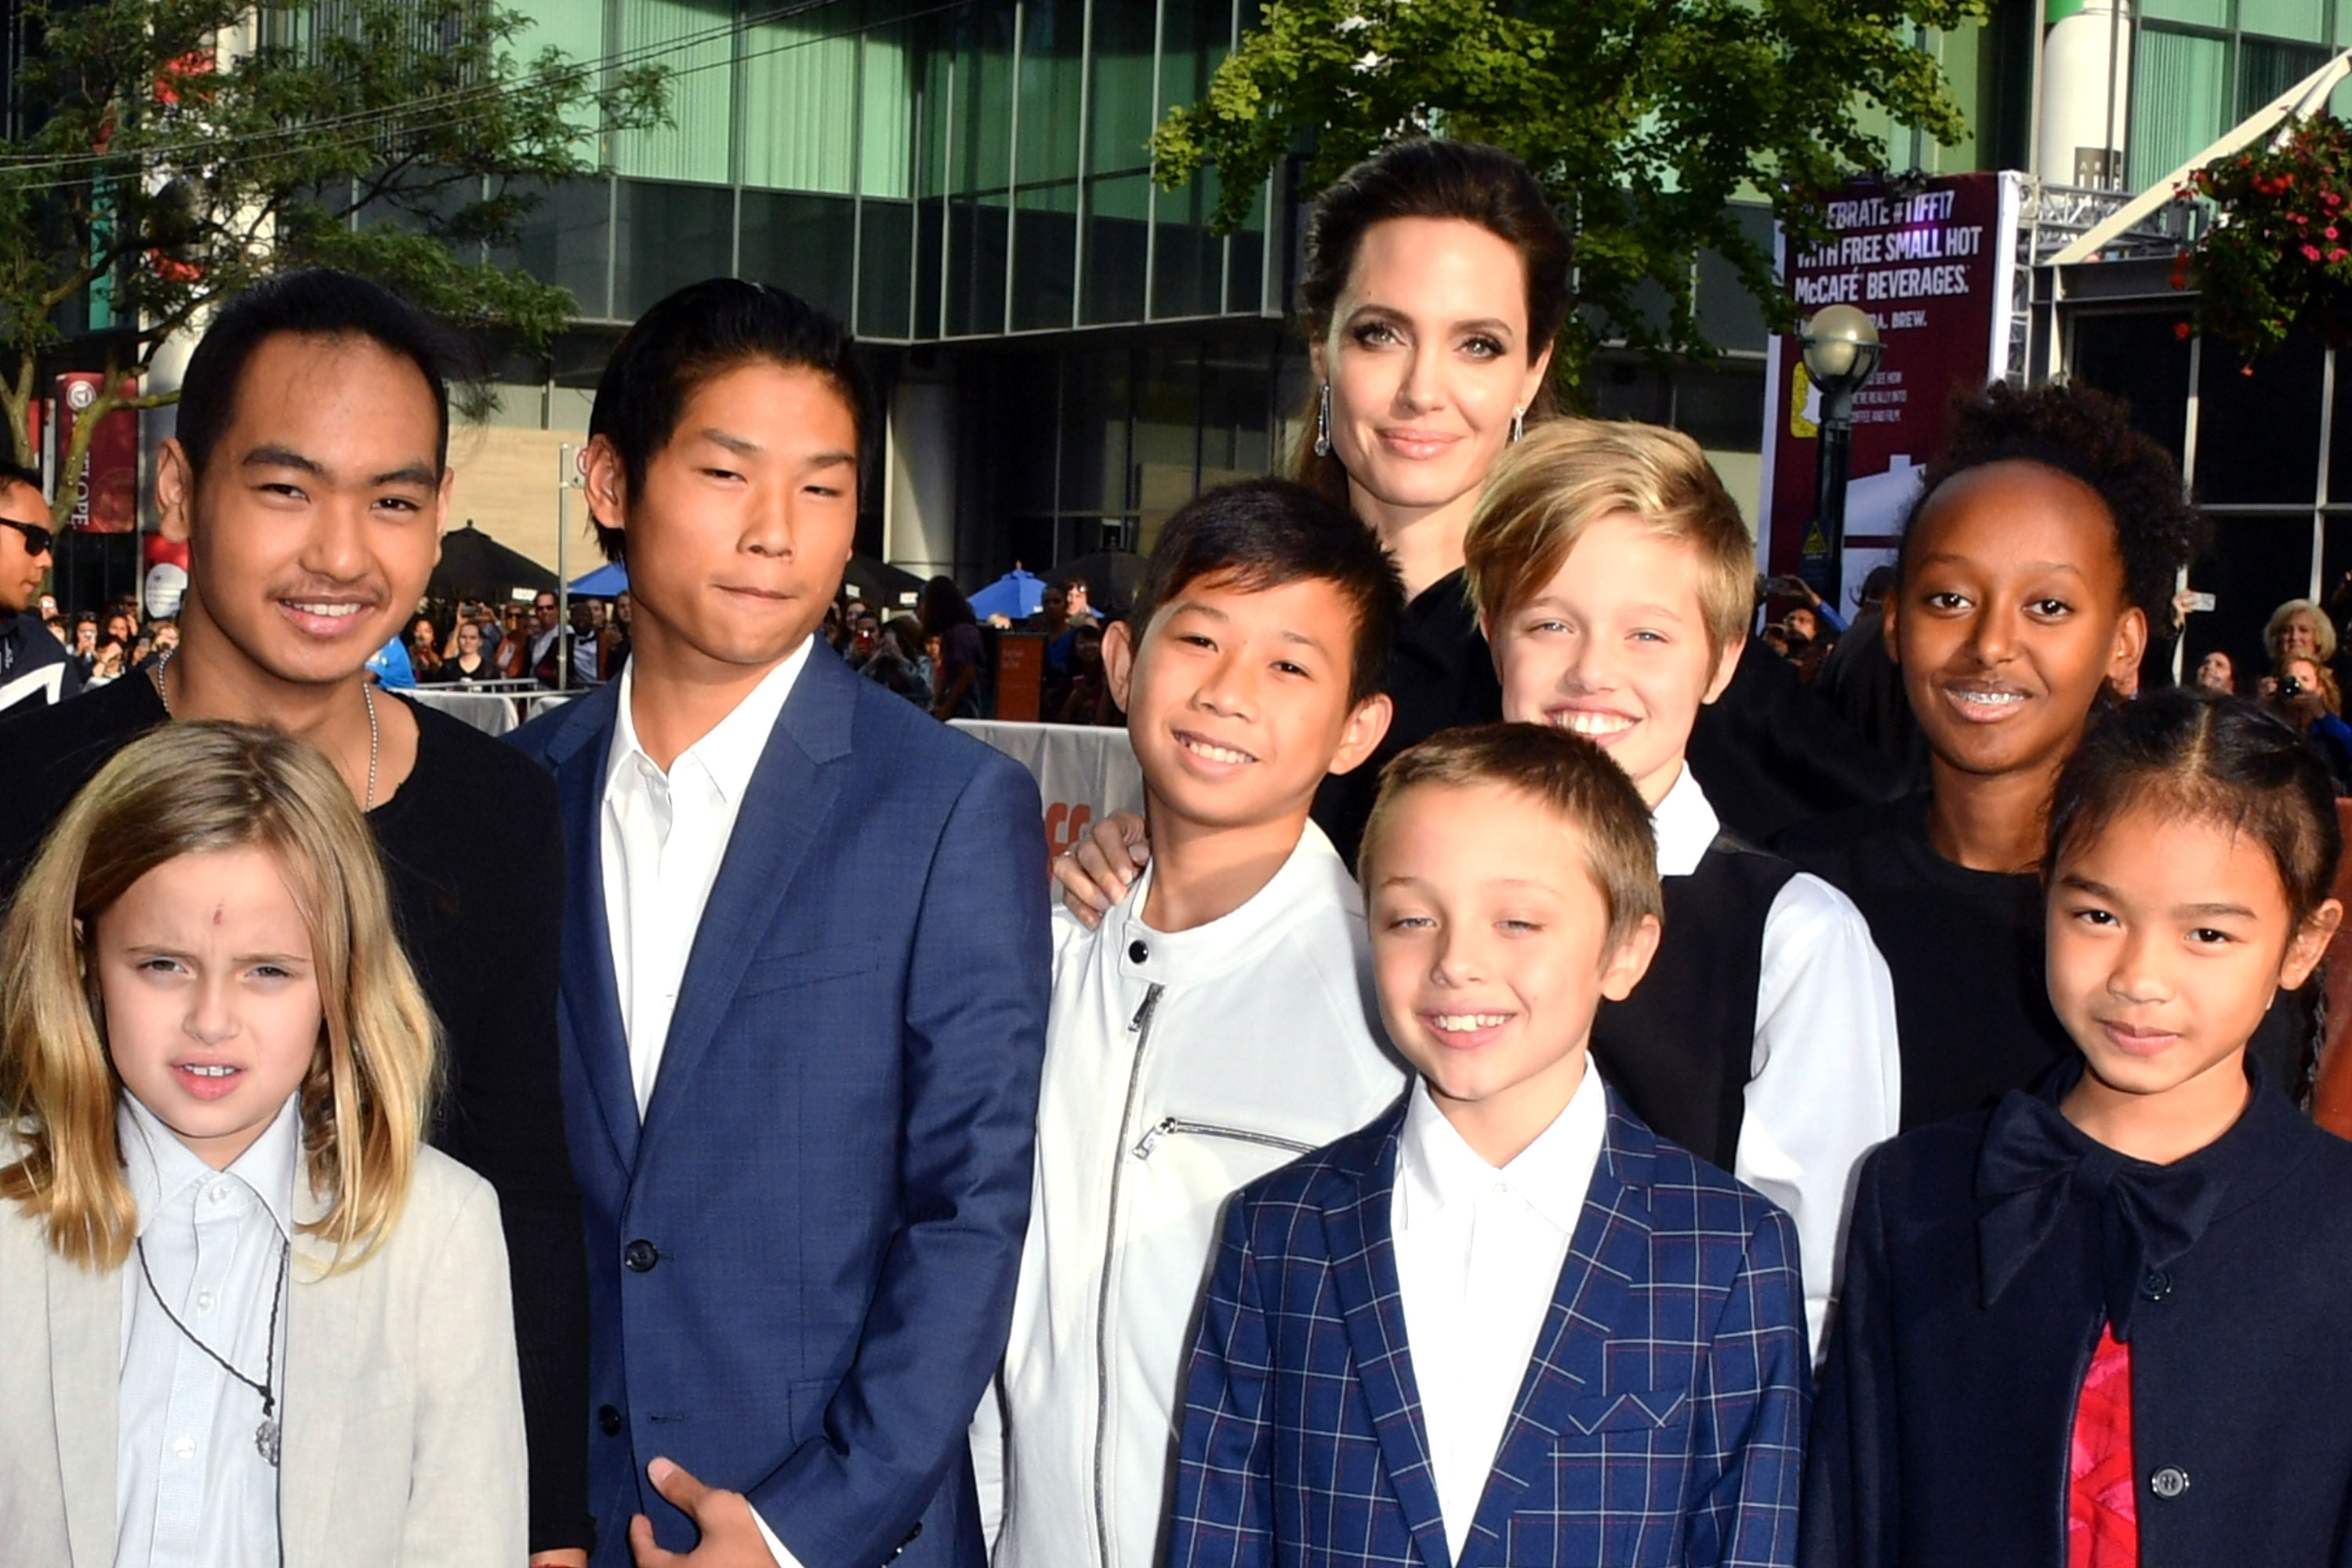 "Angelina Jolie - TORONTO, ON – SEPTEMBER 11: Vivienne Jolie-Pitt, Maddox Jolie-Pitt, Pax Jolie-Pitt, Kimhak Mun, Knox Jolie-Pitt, Shiloh Jolie-Pitt, Angelina Jolie, Zahara Jolie-Pitt and Sareum Srey Moch attend 2017 Toronto International Film Festival – ""First They Killed My Father"" Premiere at Princess of Wales Theatre on September 11, 2017 in Toronto, Canada. (Photo by George Pimentel/WireImage)"